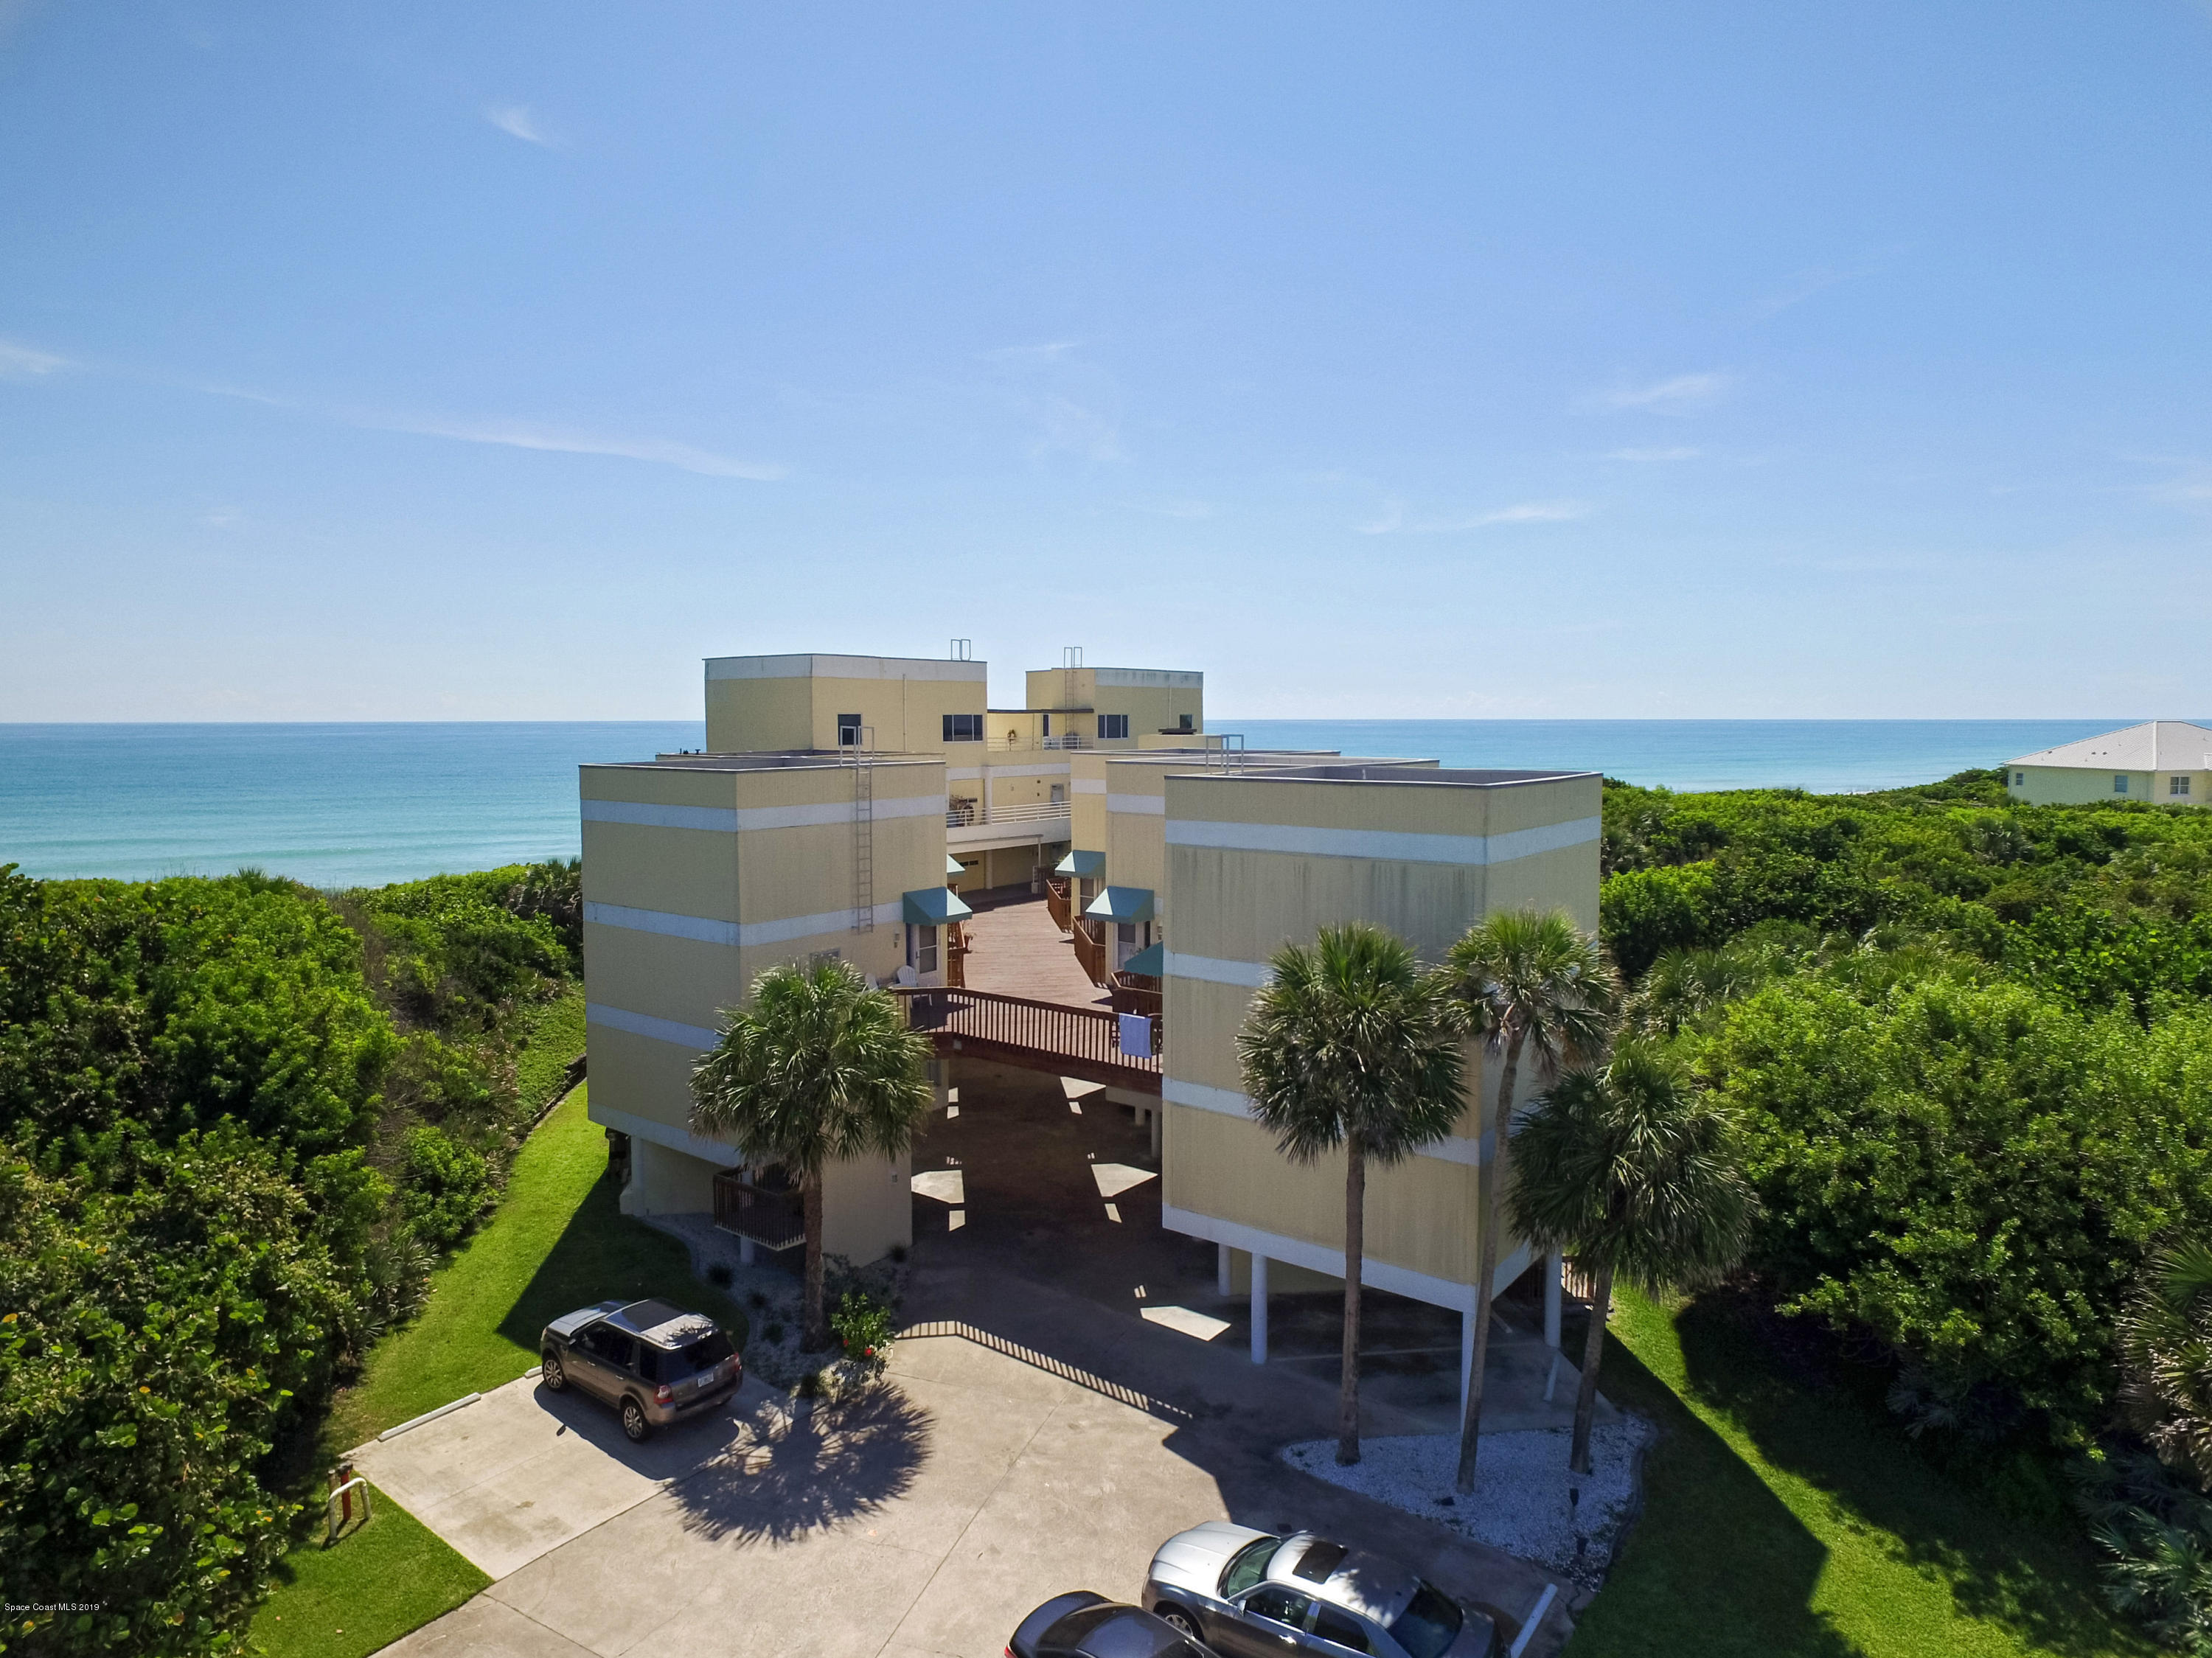 Property for Sale at 6355 S Highway A1a Melbourne Beach, Florida 32951 United States